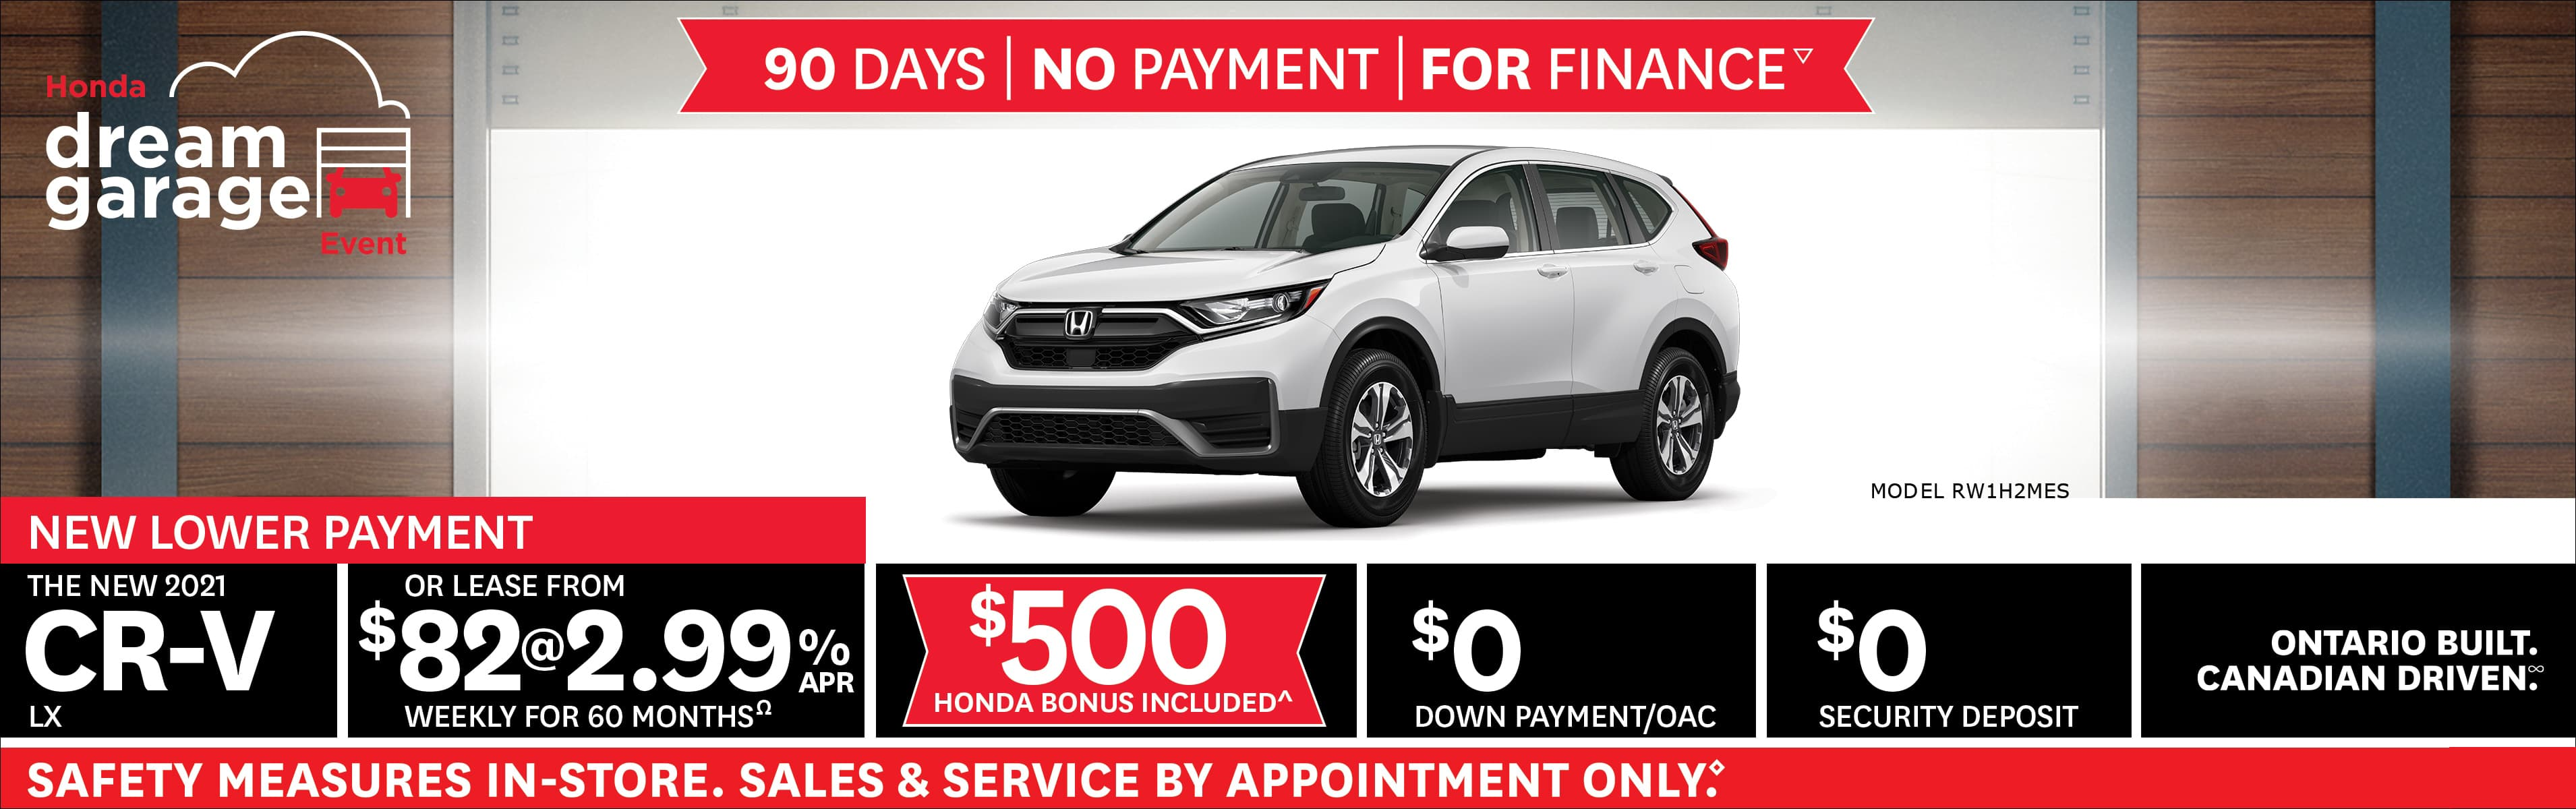 Honda CR-V Feb 2021 Incentive